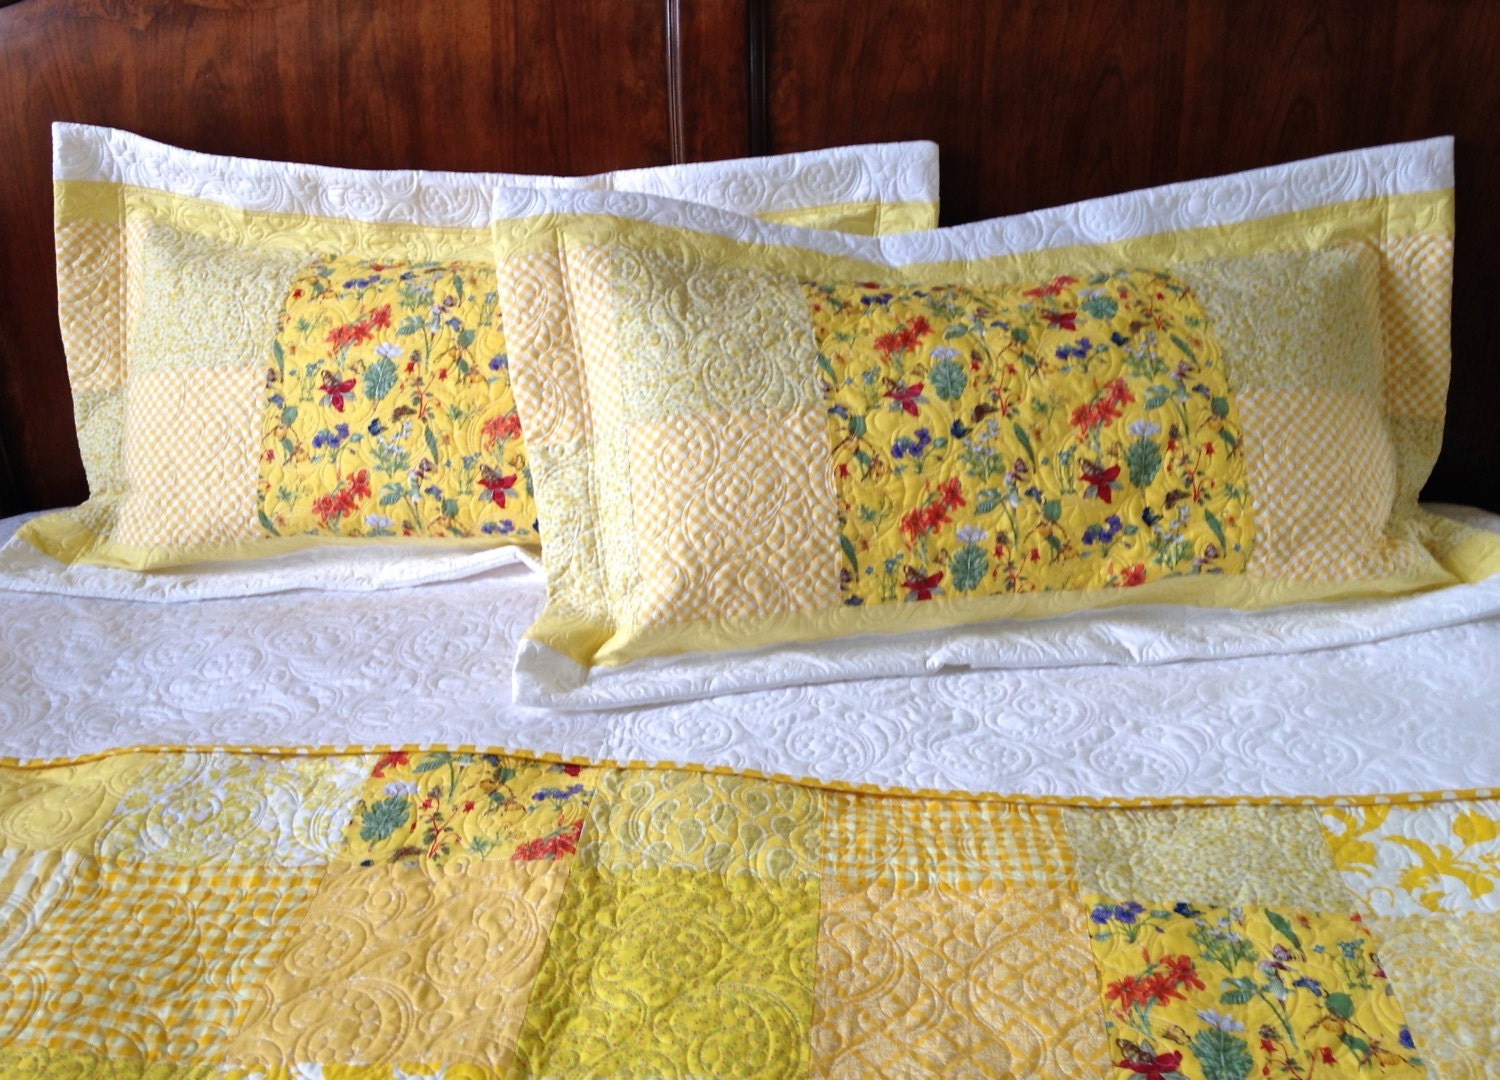 quilted pillow sham standard queen size by kimsquiltingstudio. Black Bedroom Furniture Sets. Home Design Ideas